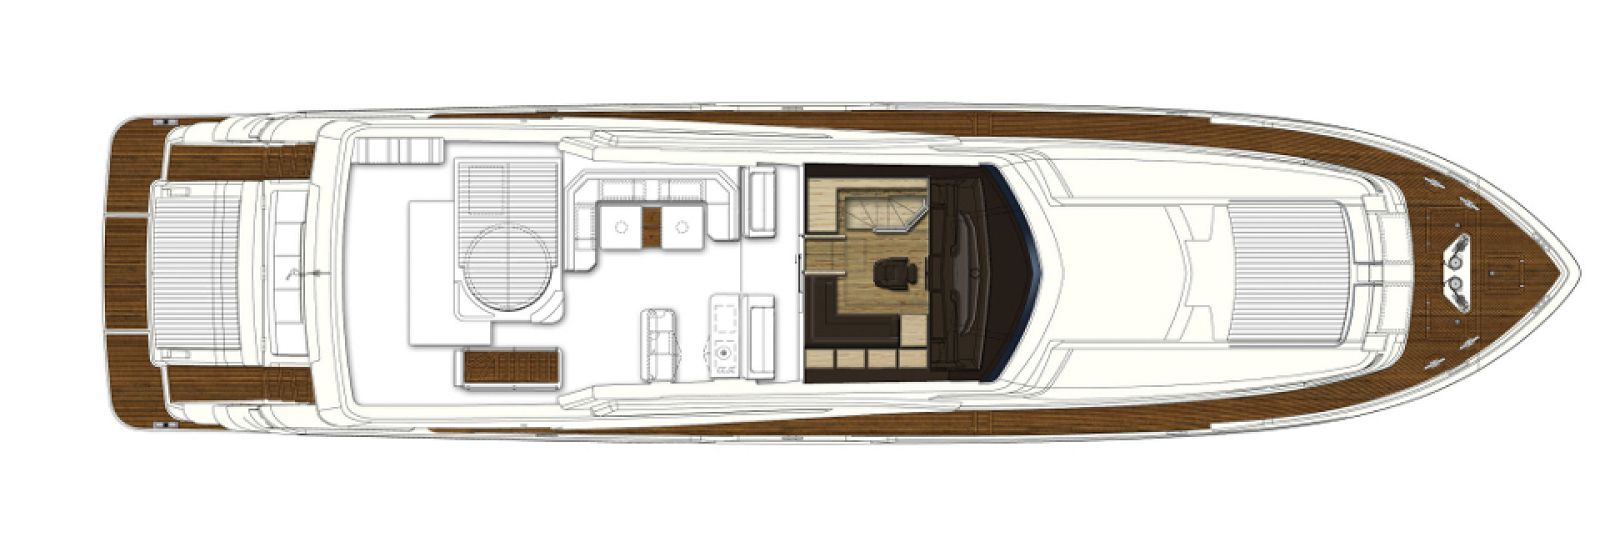 Ferretti Yachts 960 Interior - New Luxury Superyach for Sale >